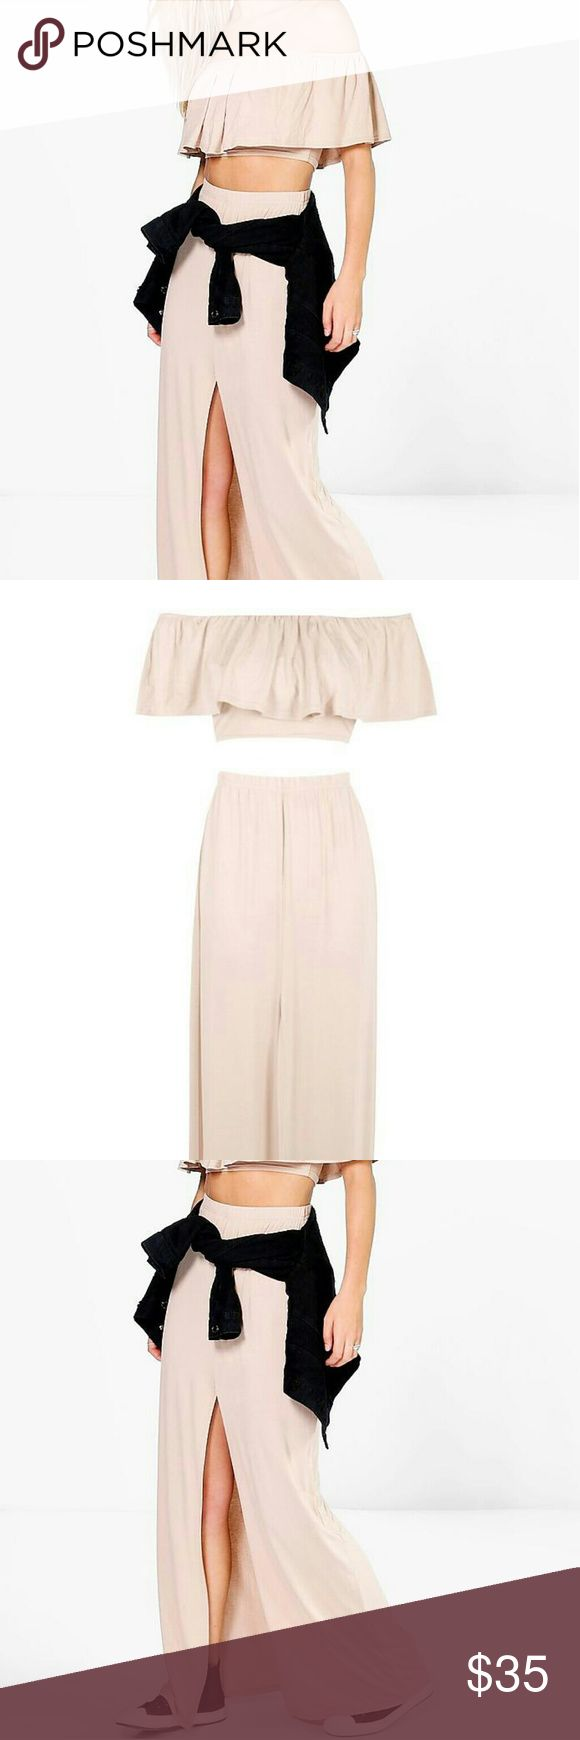 NWT Nude Co-ord Set NWT size 6 nude co-ord set. Ruffled Bandeau Top and maxi skirt with slit. Skirts Skirt Sets